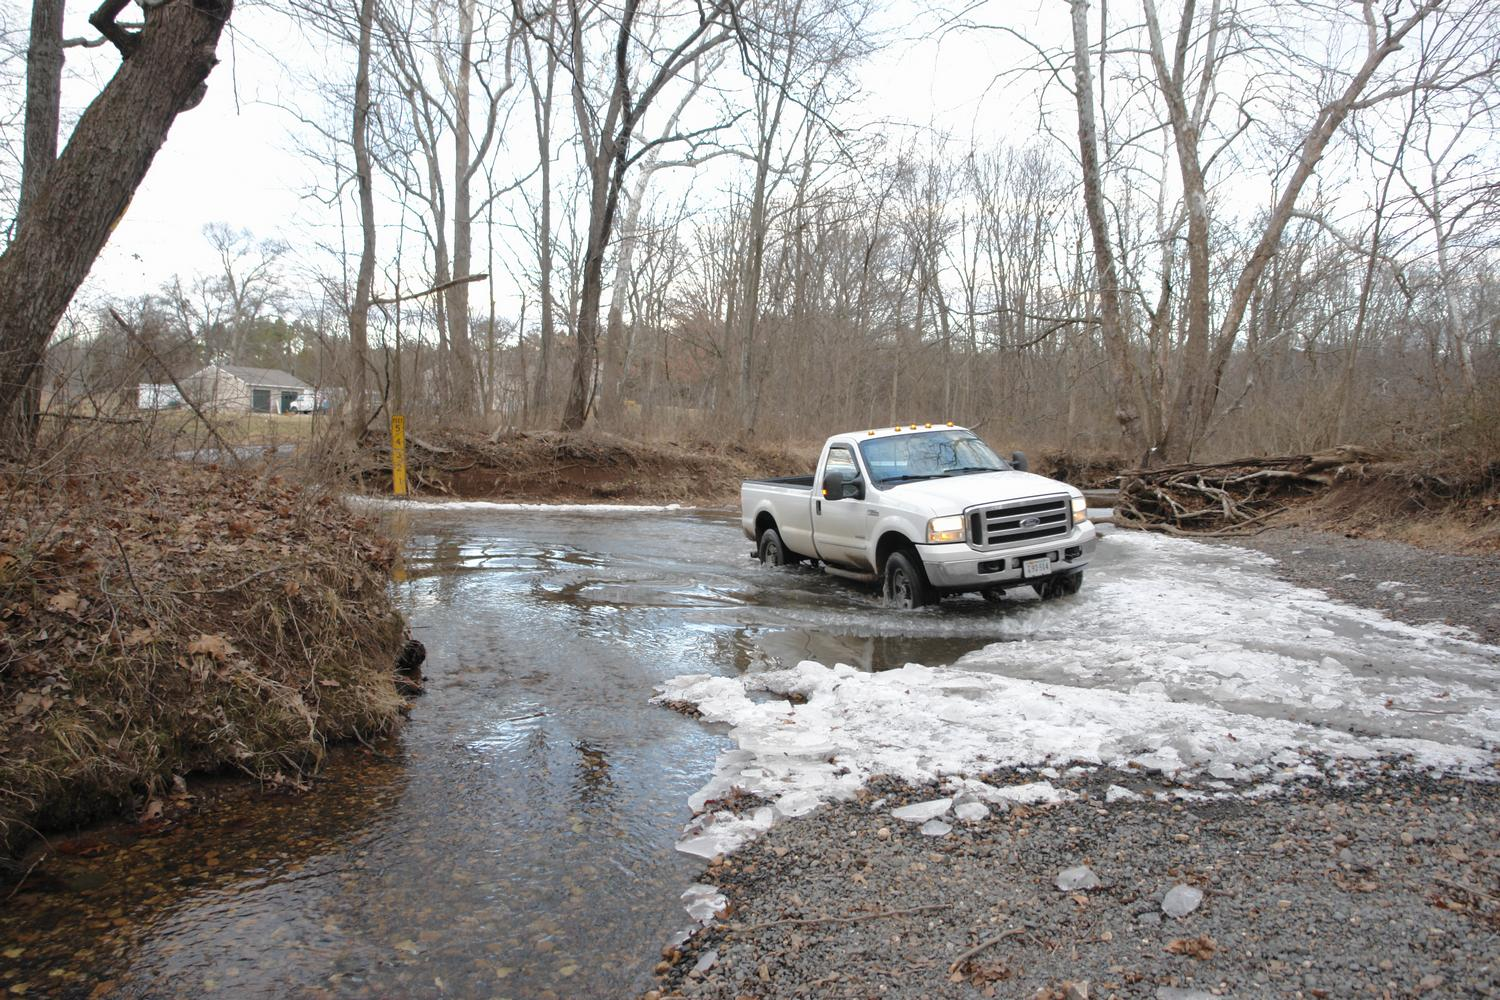 - Truck fording icy stream at Bull Run -  - taken with Sony DSC-R1 - Tony Karp, design, art, photography, techno-impressionist, techno-impressionism, aerial photography , drone , drones , dji , mavic pro , video , 3D printing - Books -